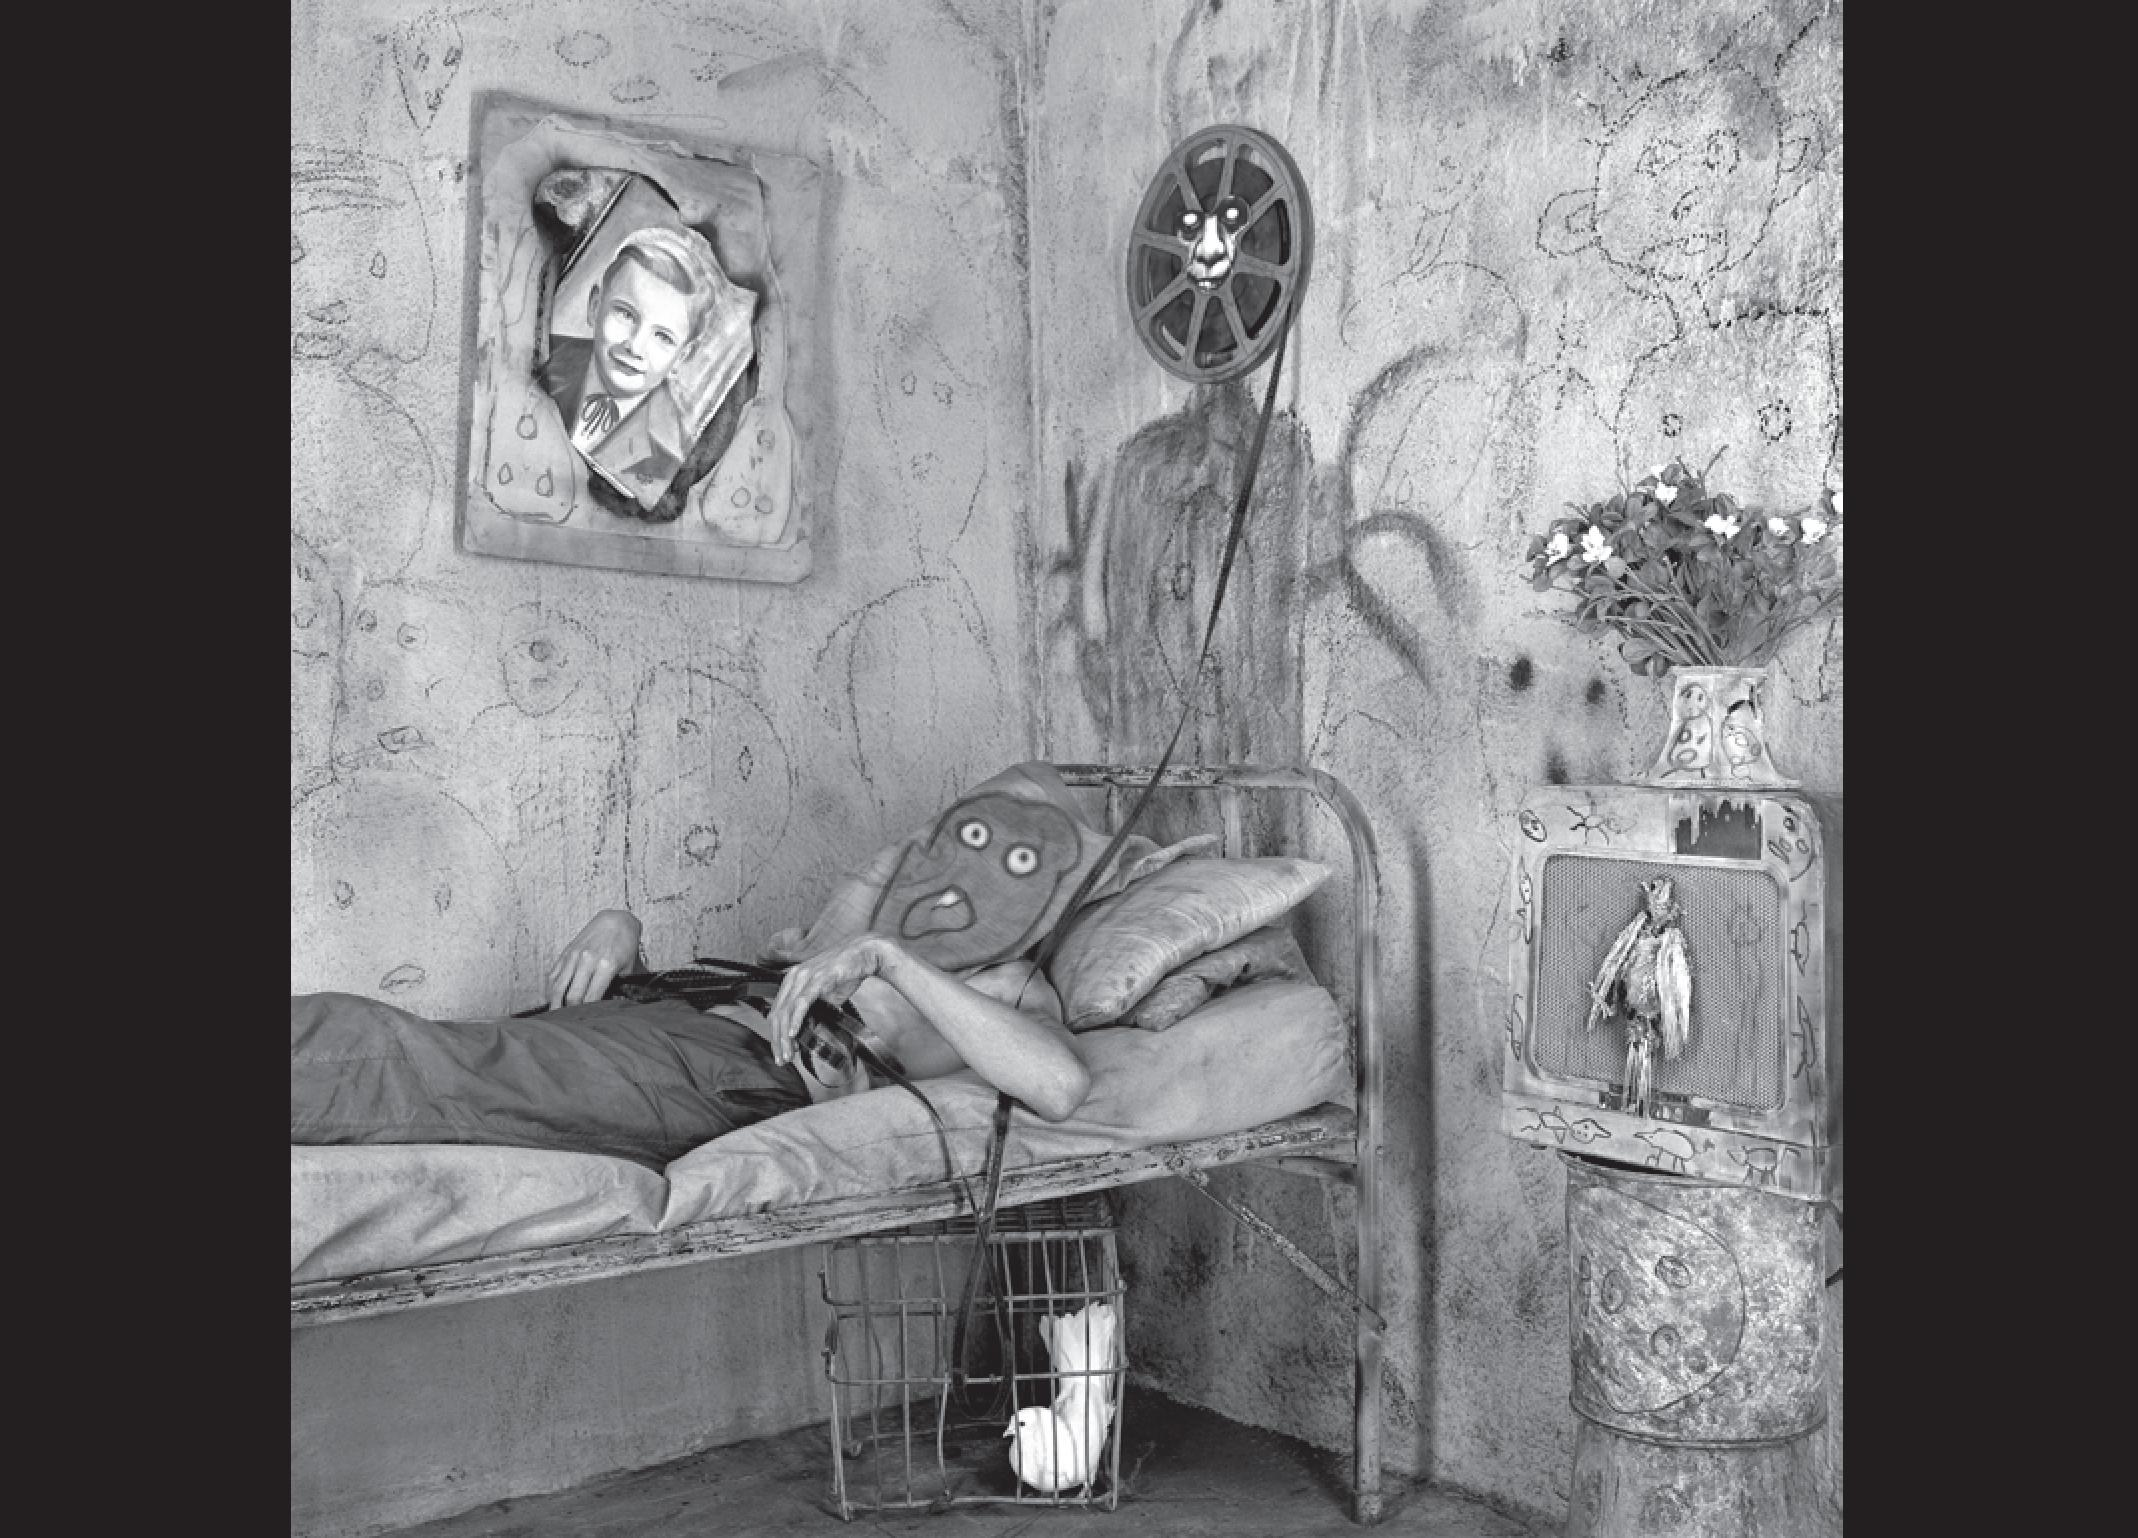 Roger Ballen is one of the most original image-makers of the twenty-first century. Asylum of the Birds showcases his iconic photographs, which were all taken entirely within the confines of a makeshift house in Johannesburg, South Africa. The inhabitants of the house, both people and animals, and most notably the ever-present birds, are the cast who perform within a sculptural and decorated theatrical interior that the author creates and orchestrates.